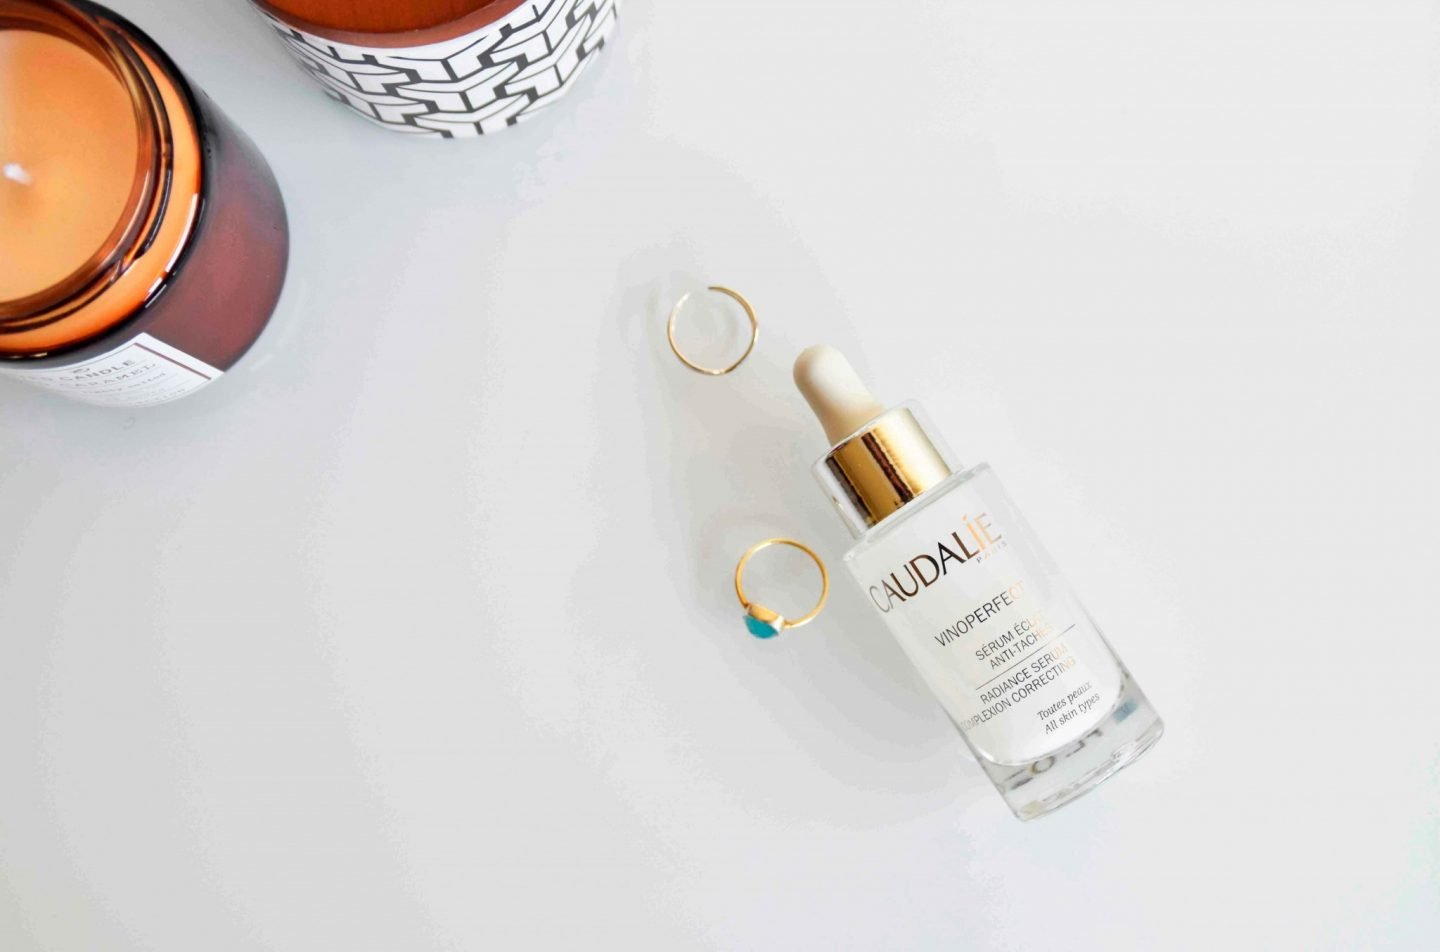 Serum Vinoperfect de Caudalie | Review